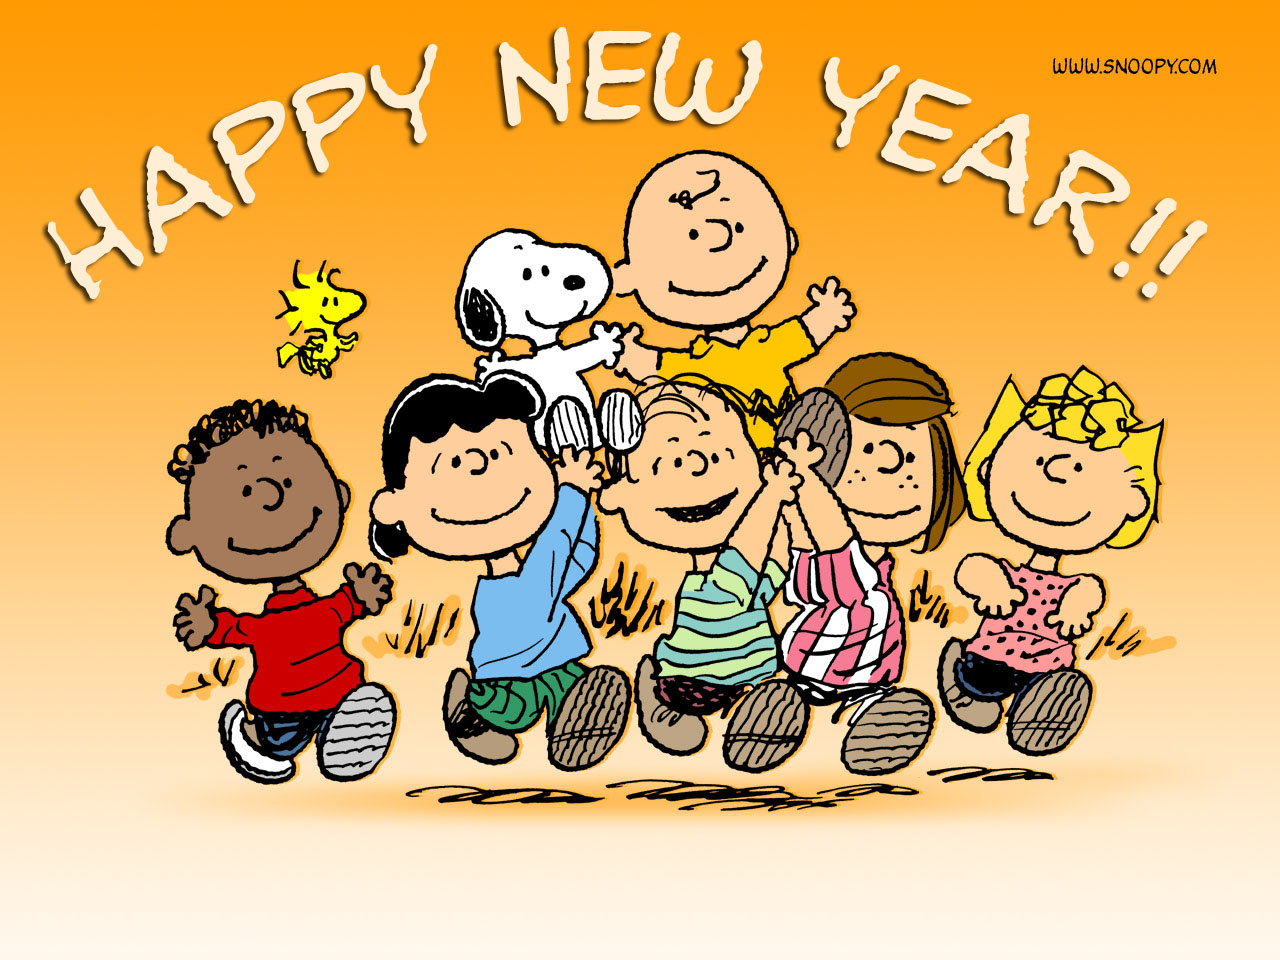 new year sms 2012 free sms sms message love sms funny sms sms text . 1280 x 960.Happy New Year Gif Images Free